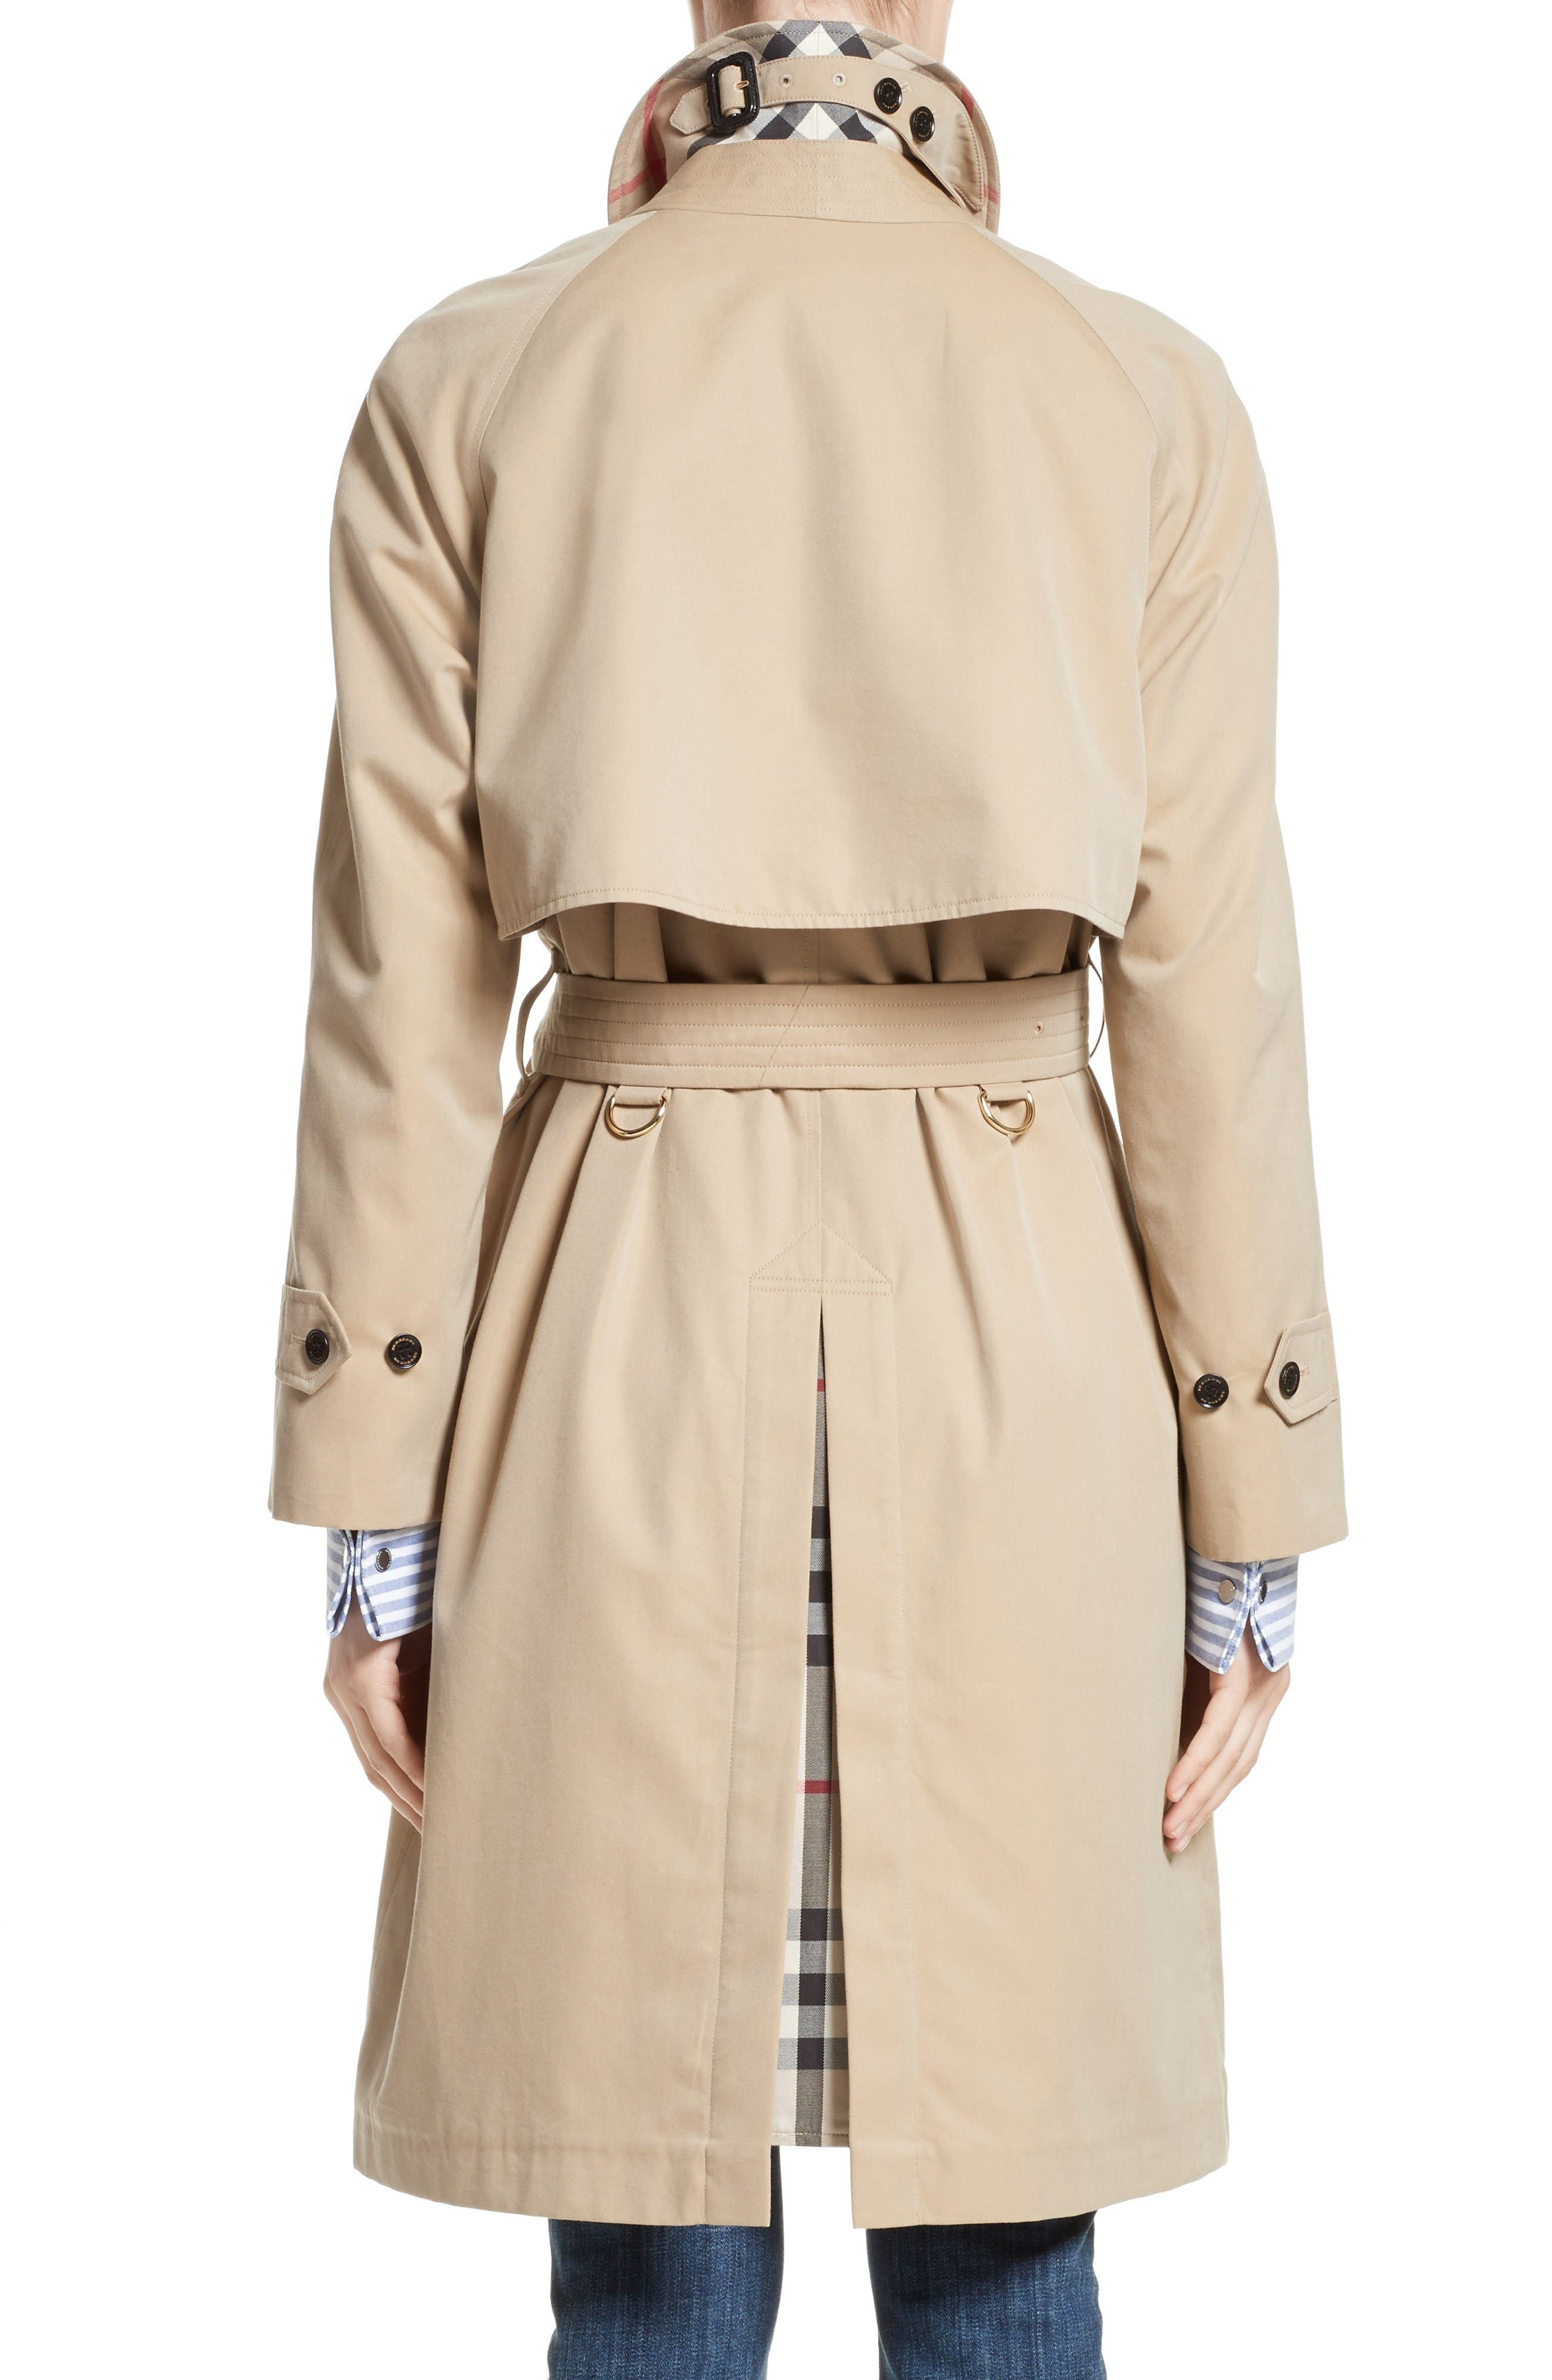 Brinkhill Trench Coat,                             Alternate thumbnail 2, color,                             Honey